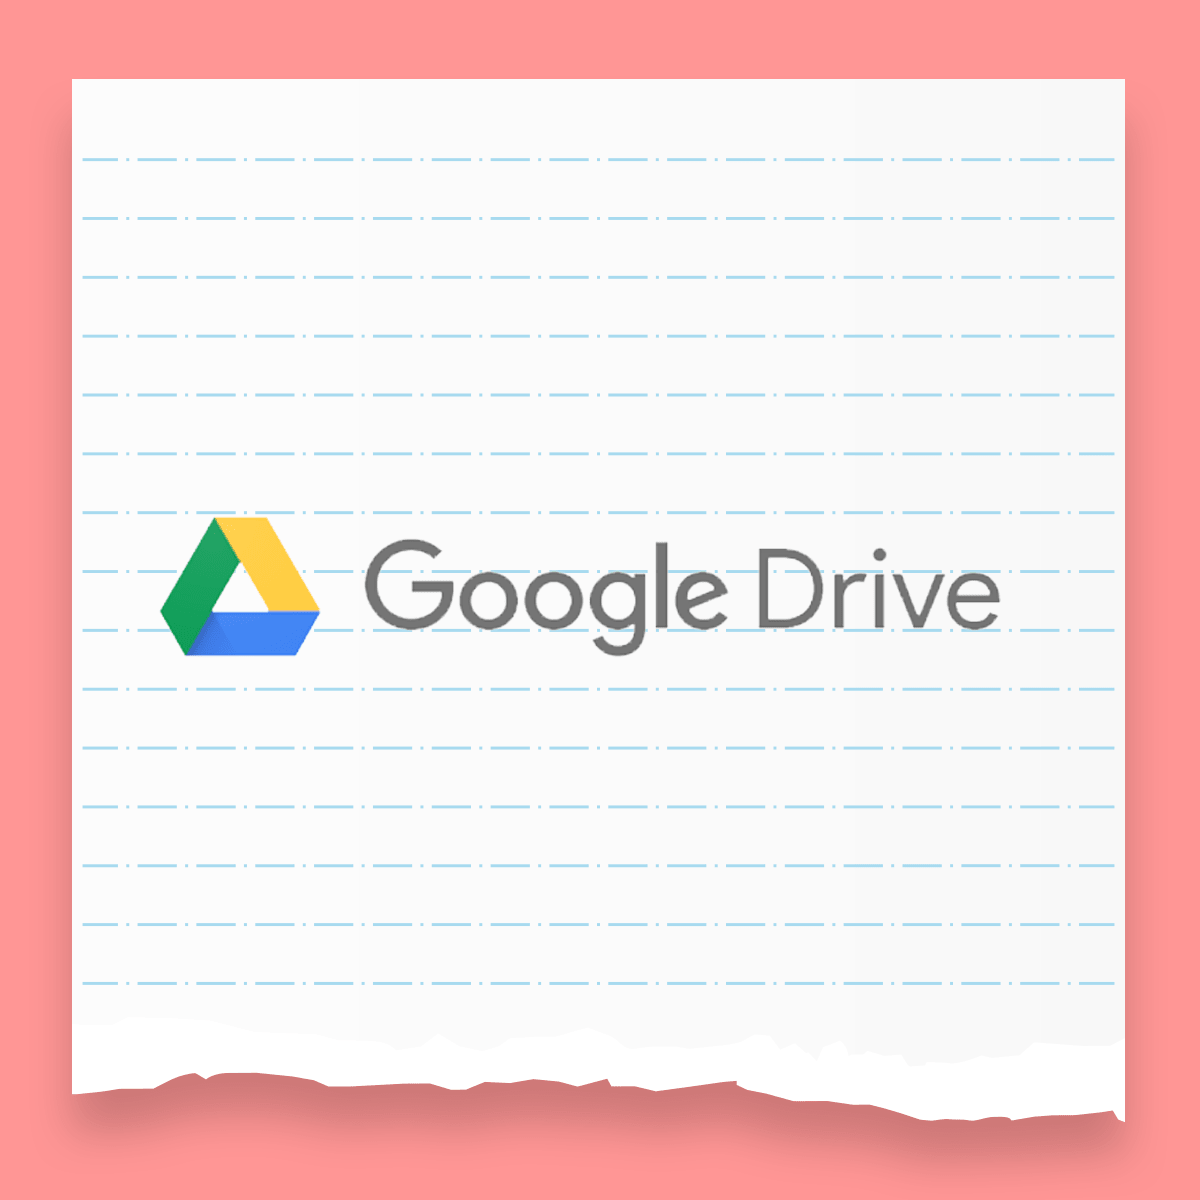 Google Drive: Used for file management and time blocking